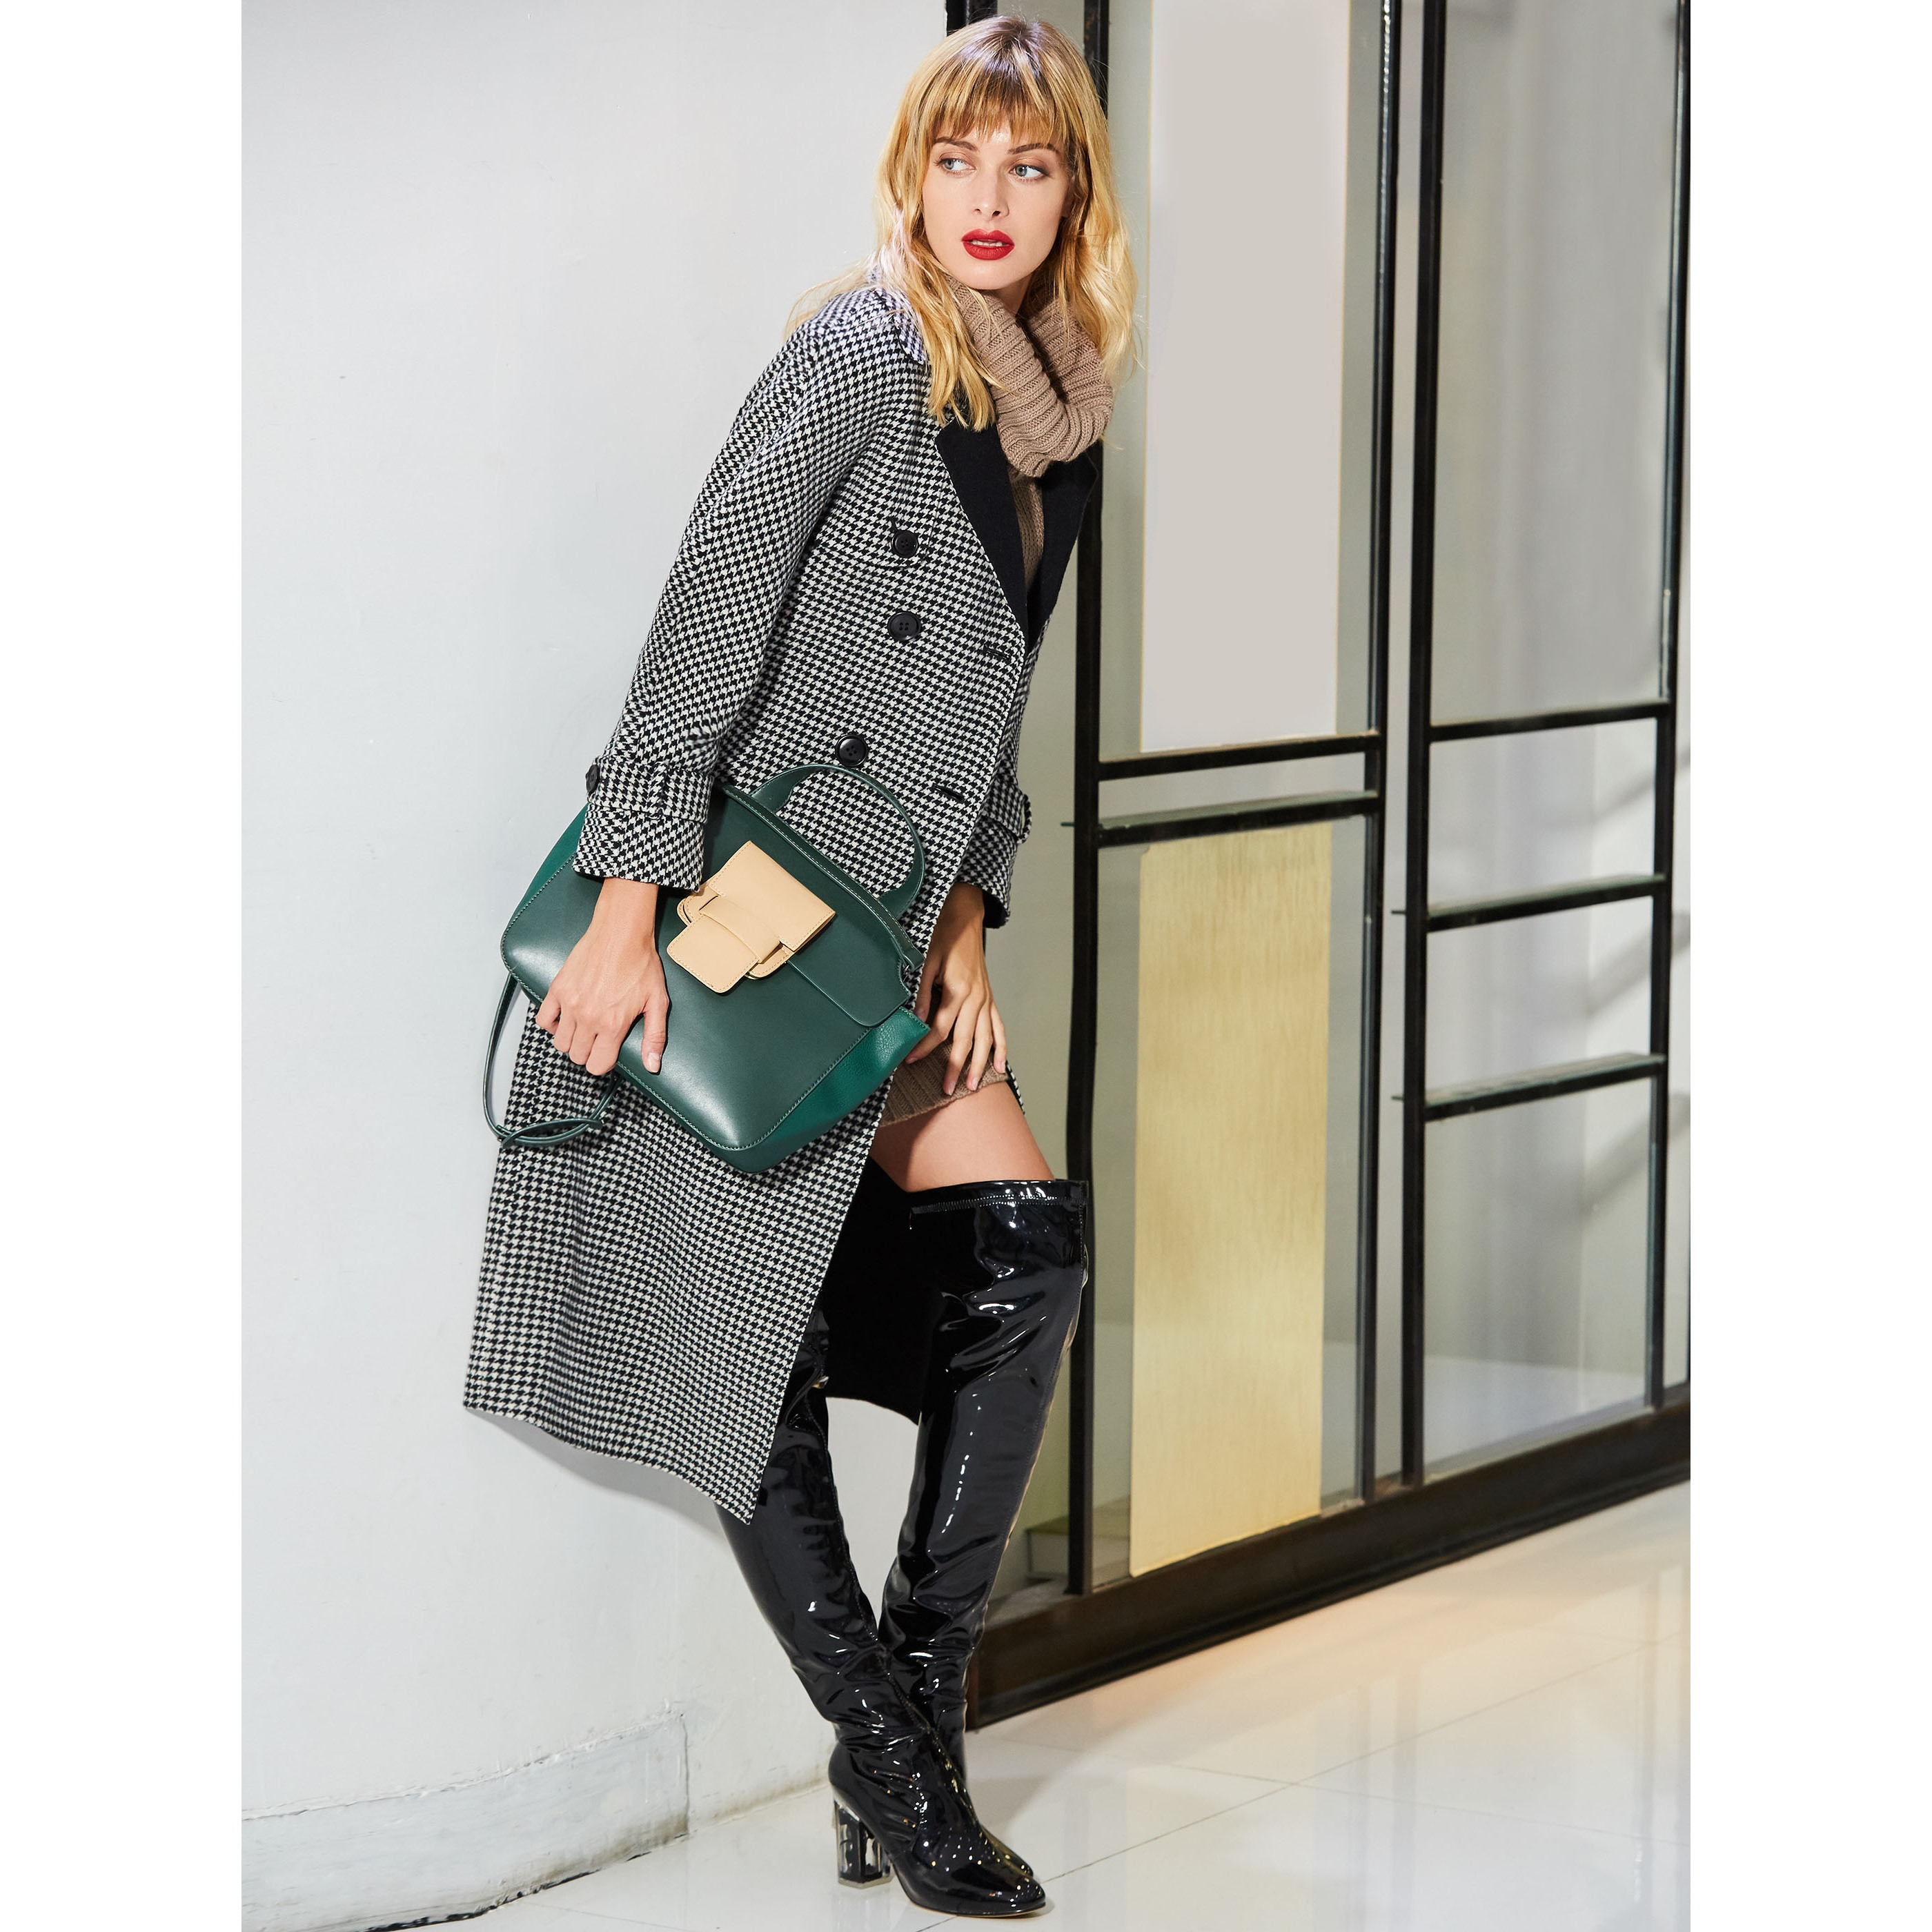 Women High Street Outwear Trench Coat Plus Size Lapel Winter Coat Plaid Checkered Elegant Cashmere Career Office Lady Top Coat